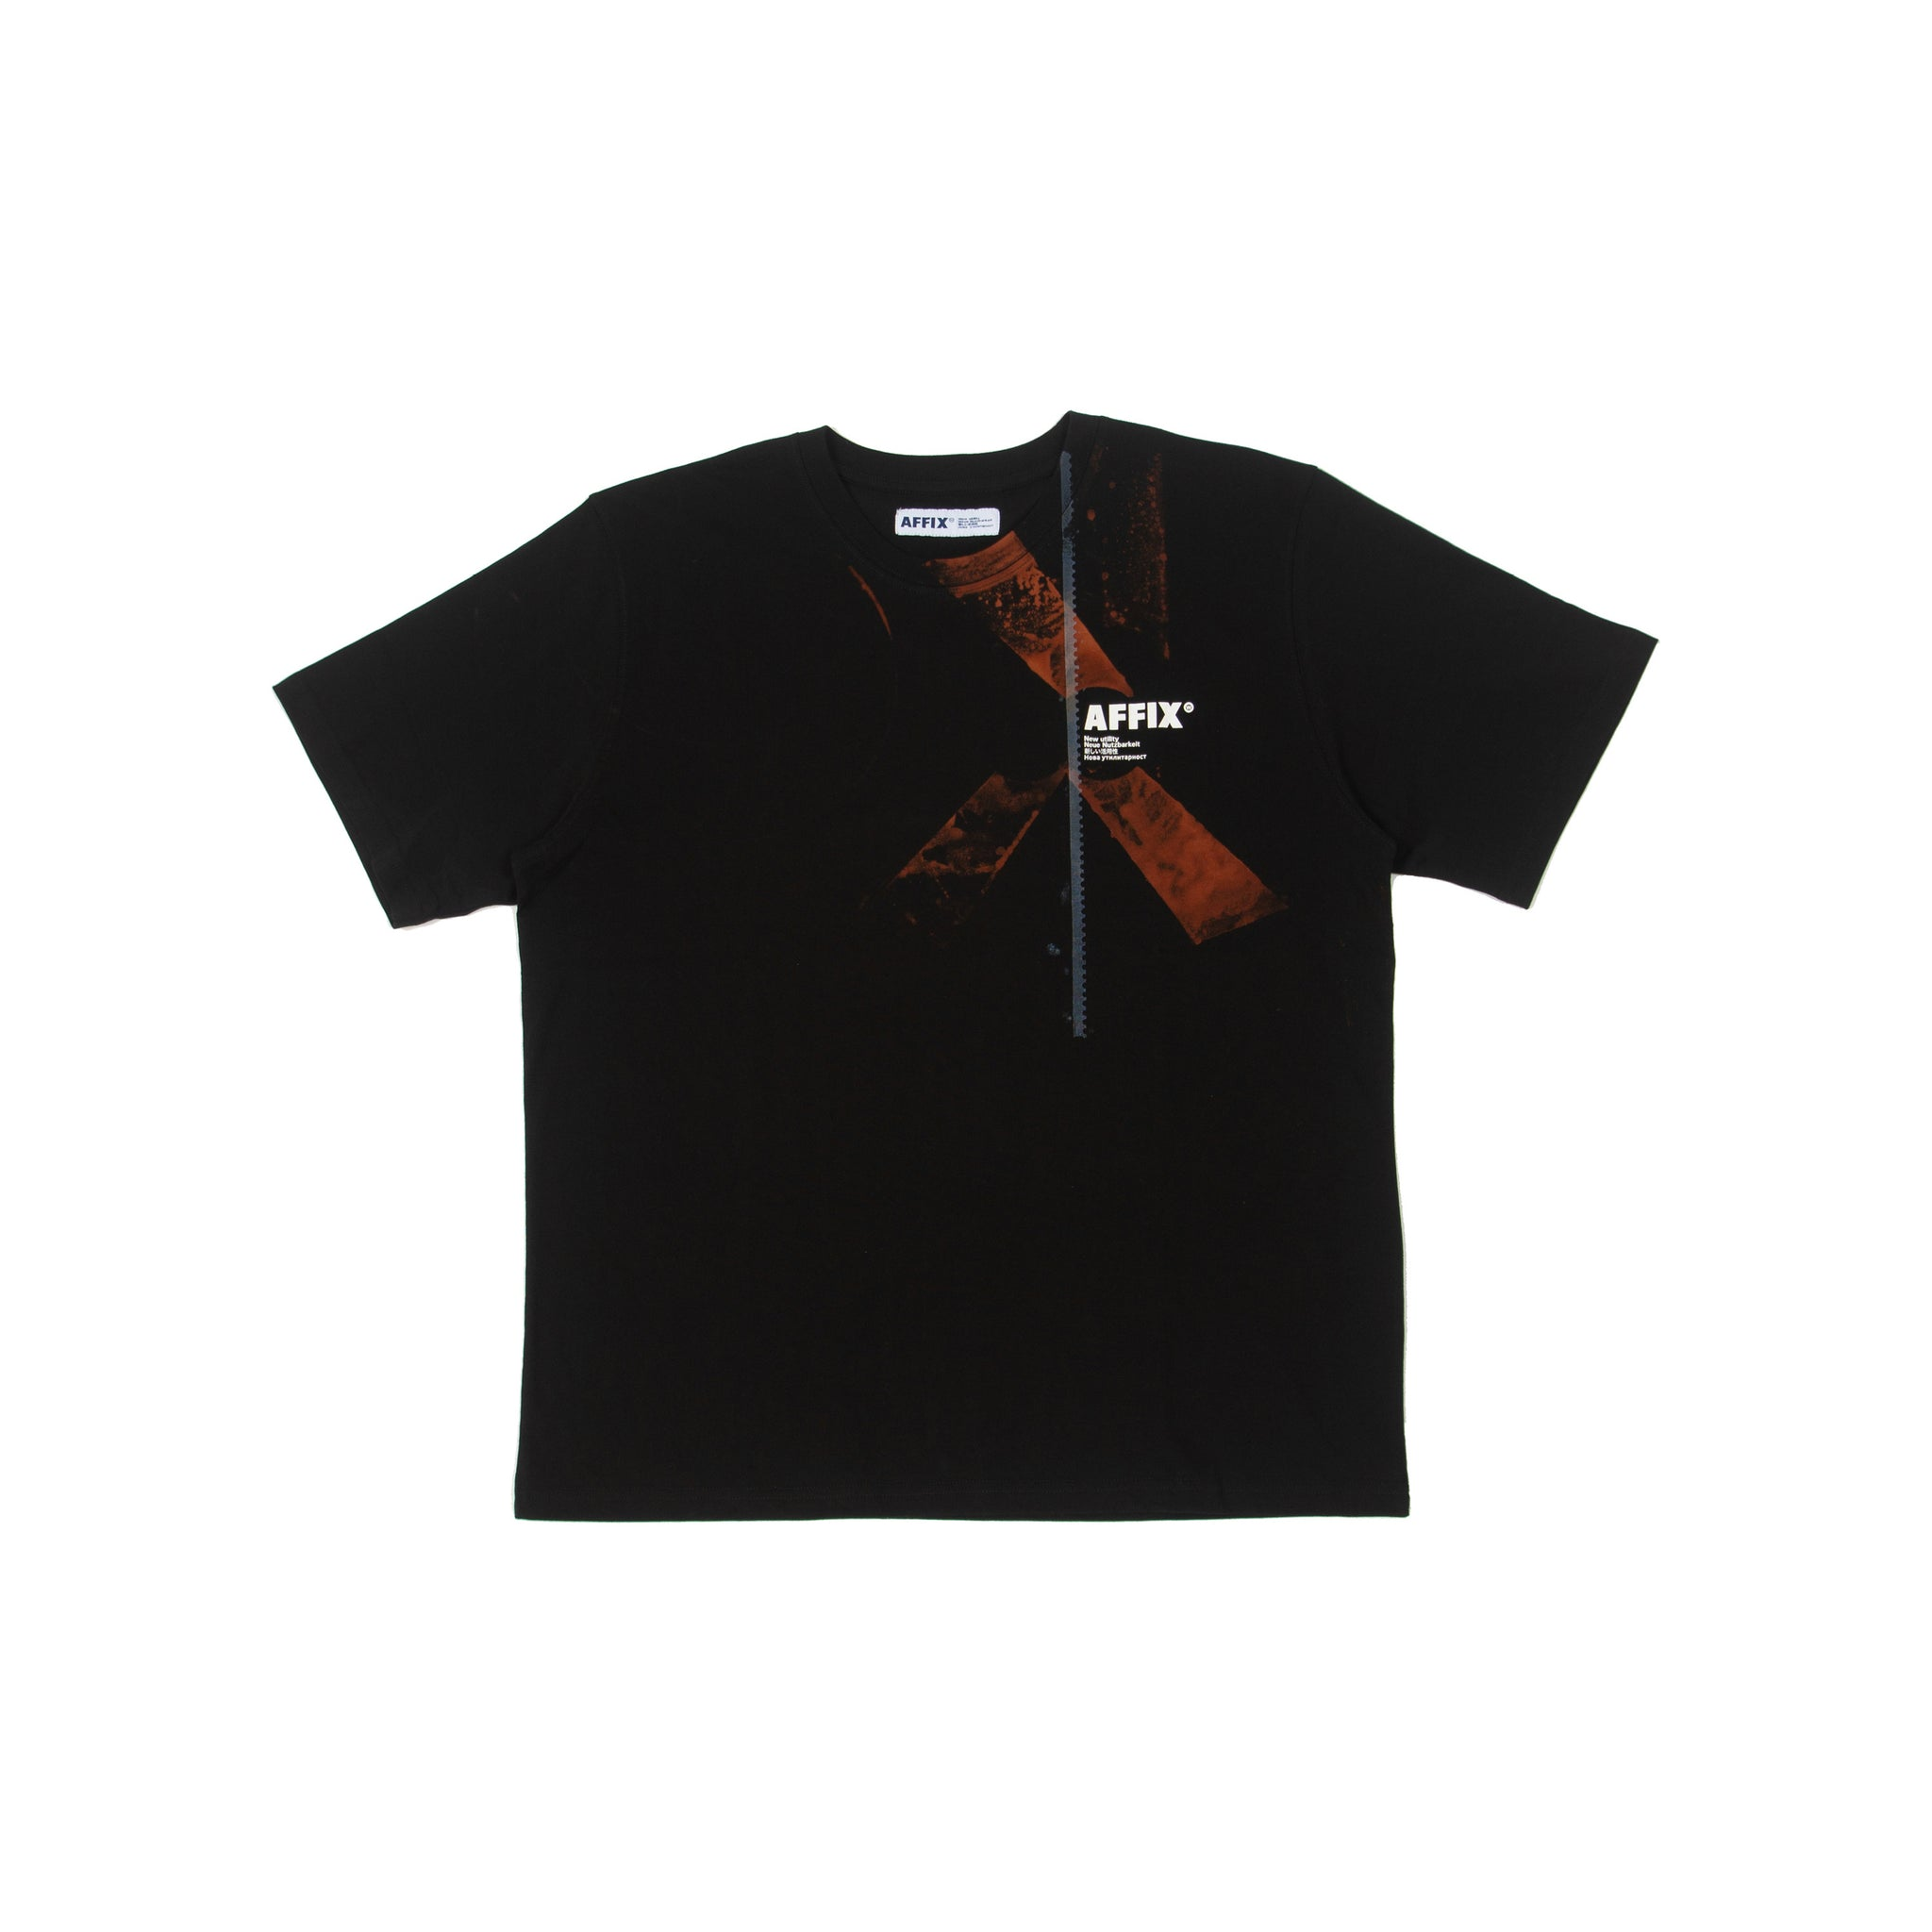 AFFIX re WORKS T-SHIRT SS 05 XL